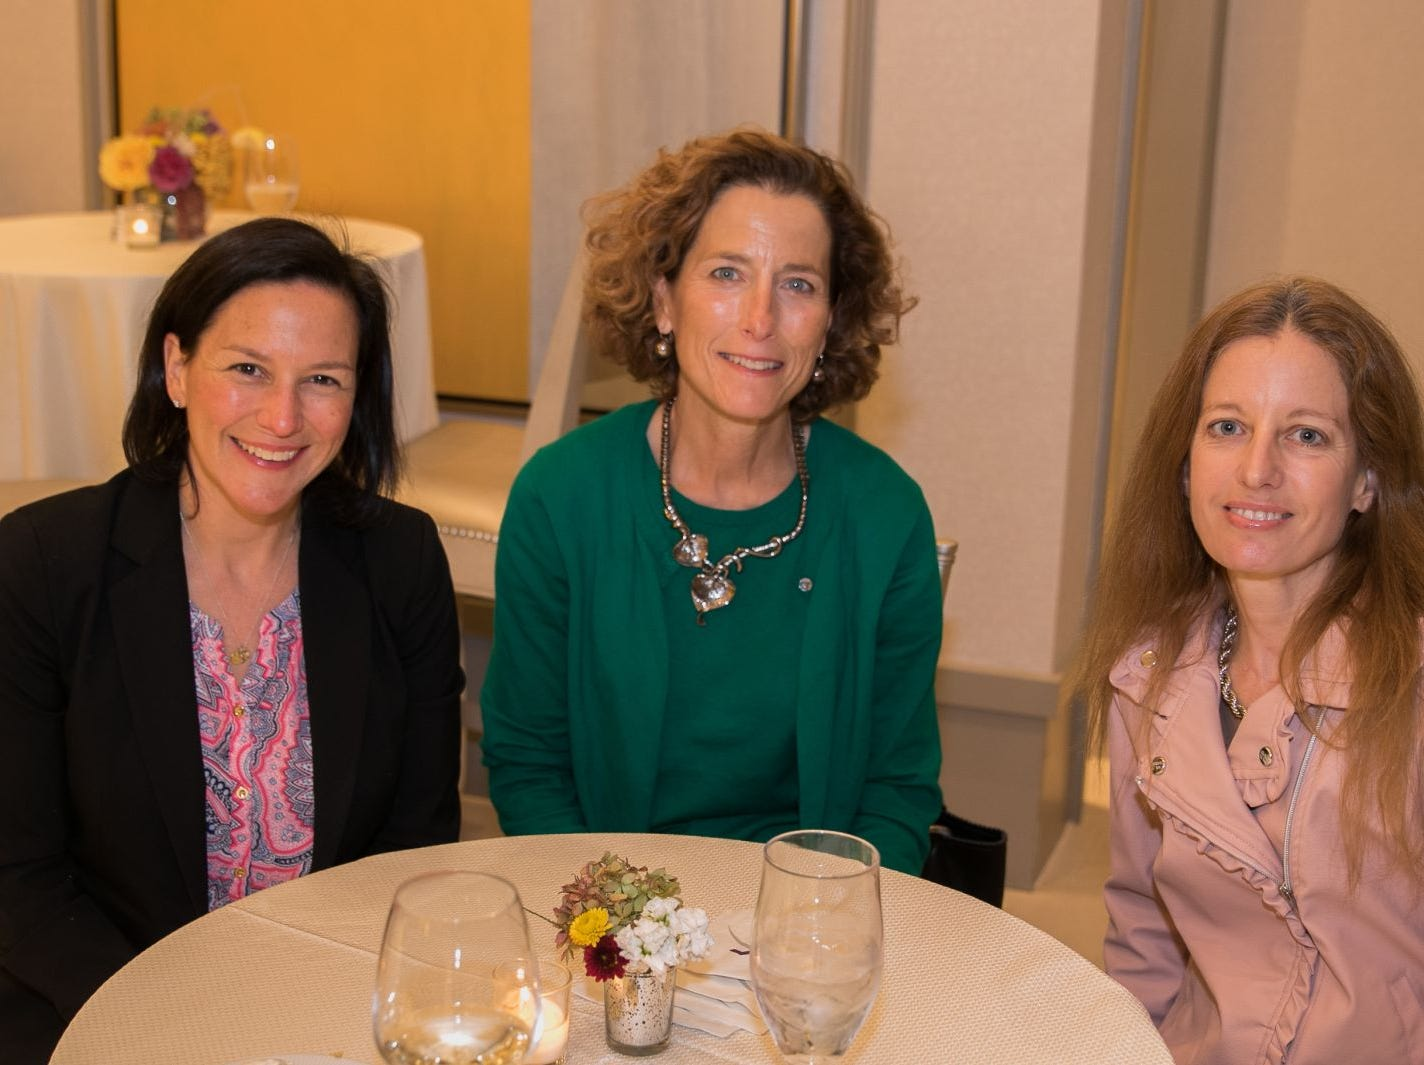 Tori Davies Weil, Allison Cobb, Kathleen Reichard. North Jersey Events held its Women for Women and Storytellers event at Edgewood Country Club in Rivervale. The evening featured a light reception followed by a panel discussion with members from Holy Name Medical Center. The panel was moderated by Megan Finnerty, Director of Storytellers Project, USA TODAY NETWORK. Holy Name Medical Center sponsored the event. 10/23/2018